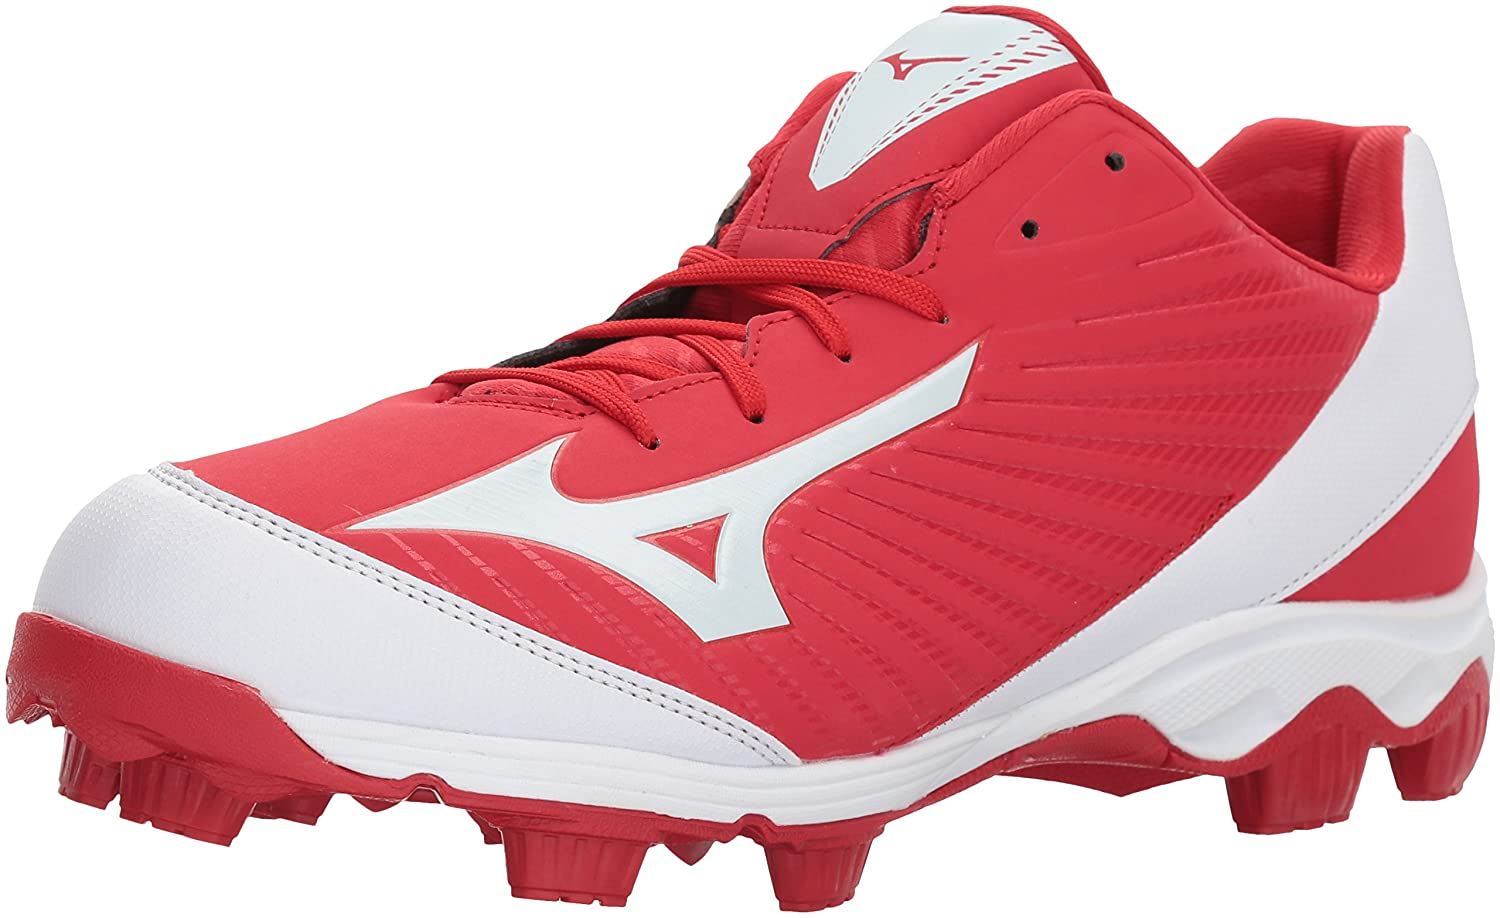 Mizuno (MIZD9) メンズ 9-Spike Advanced Franchise 9 Molded Baseball Cleat Low B071WKC8L4 8.5 D US|レッド/ホワイト レッド/ホワイト 8.5 D US